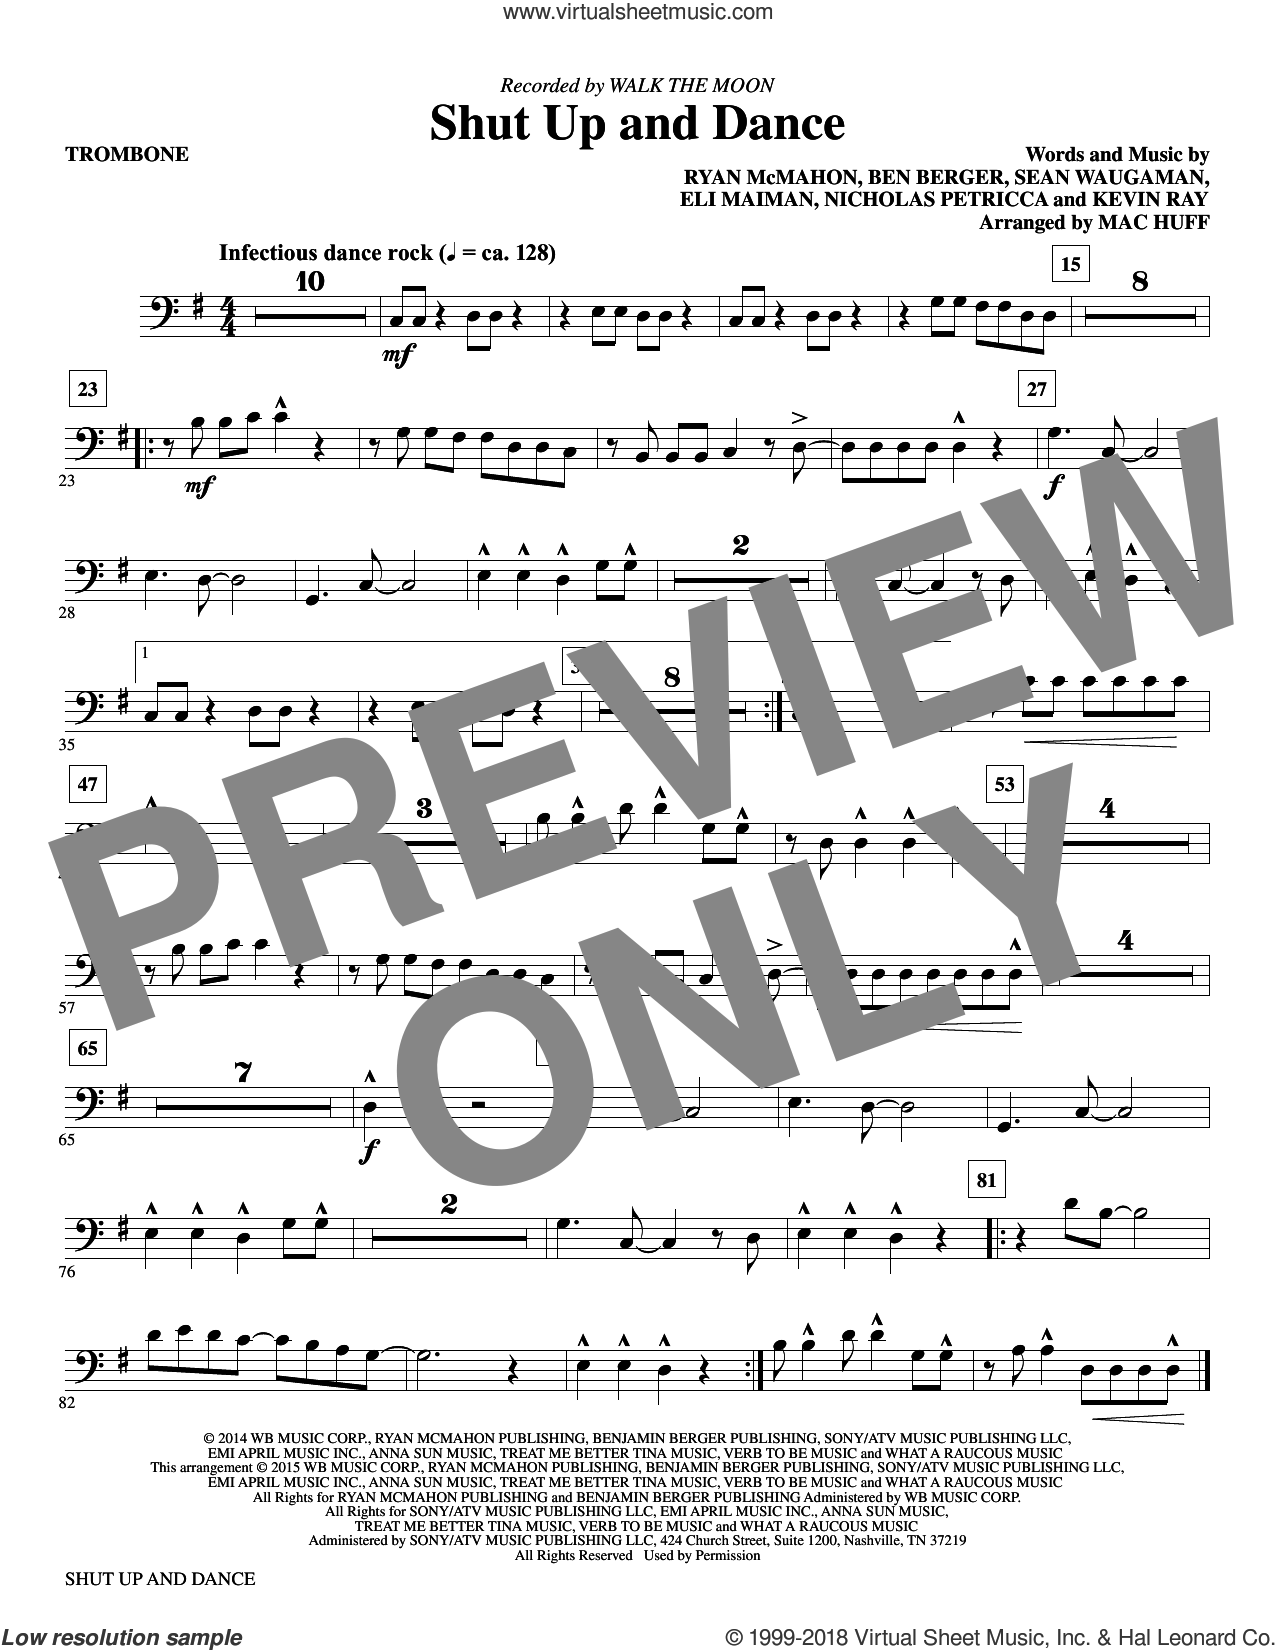 Shut Up and Dance (complete set of parts) sheet music for orchestra/band by Mac Huff, Ben Berger, Eli Maiman, Kevin Ray, Nicholas Petricca, Ryan McMahon, Sean Waugaman and Walk The Moon, intermediate